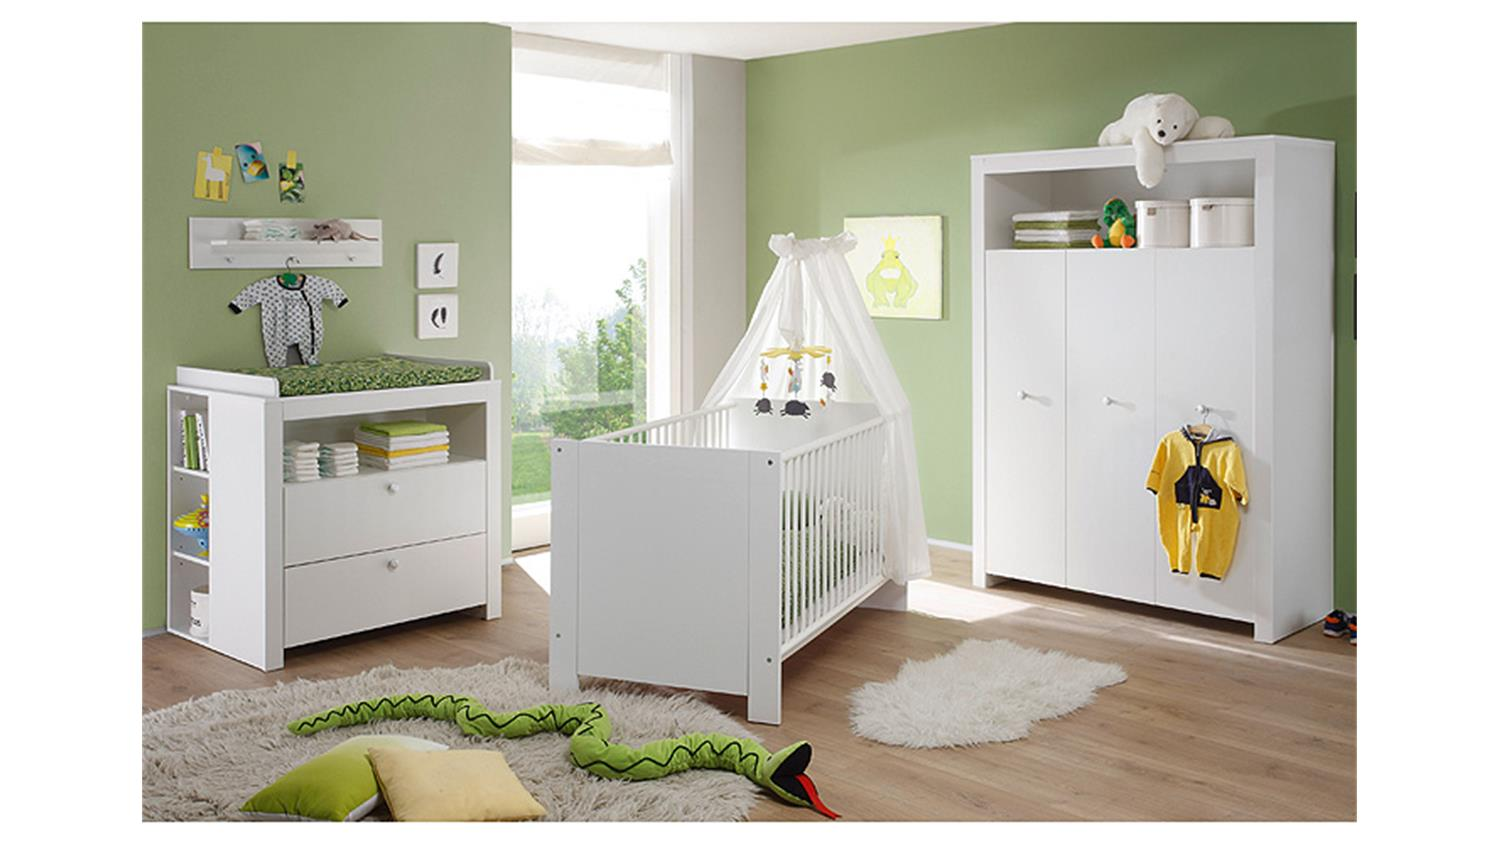 2743 Kinderzimmer Set